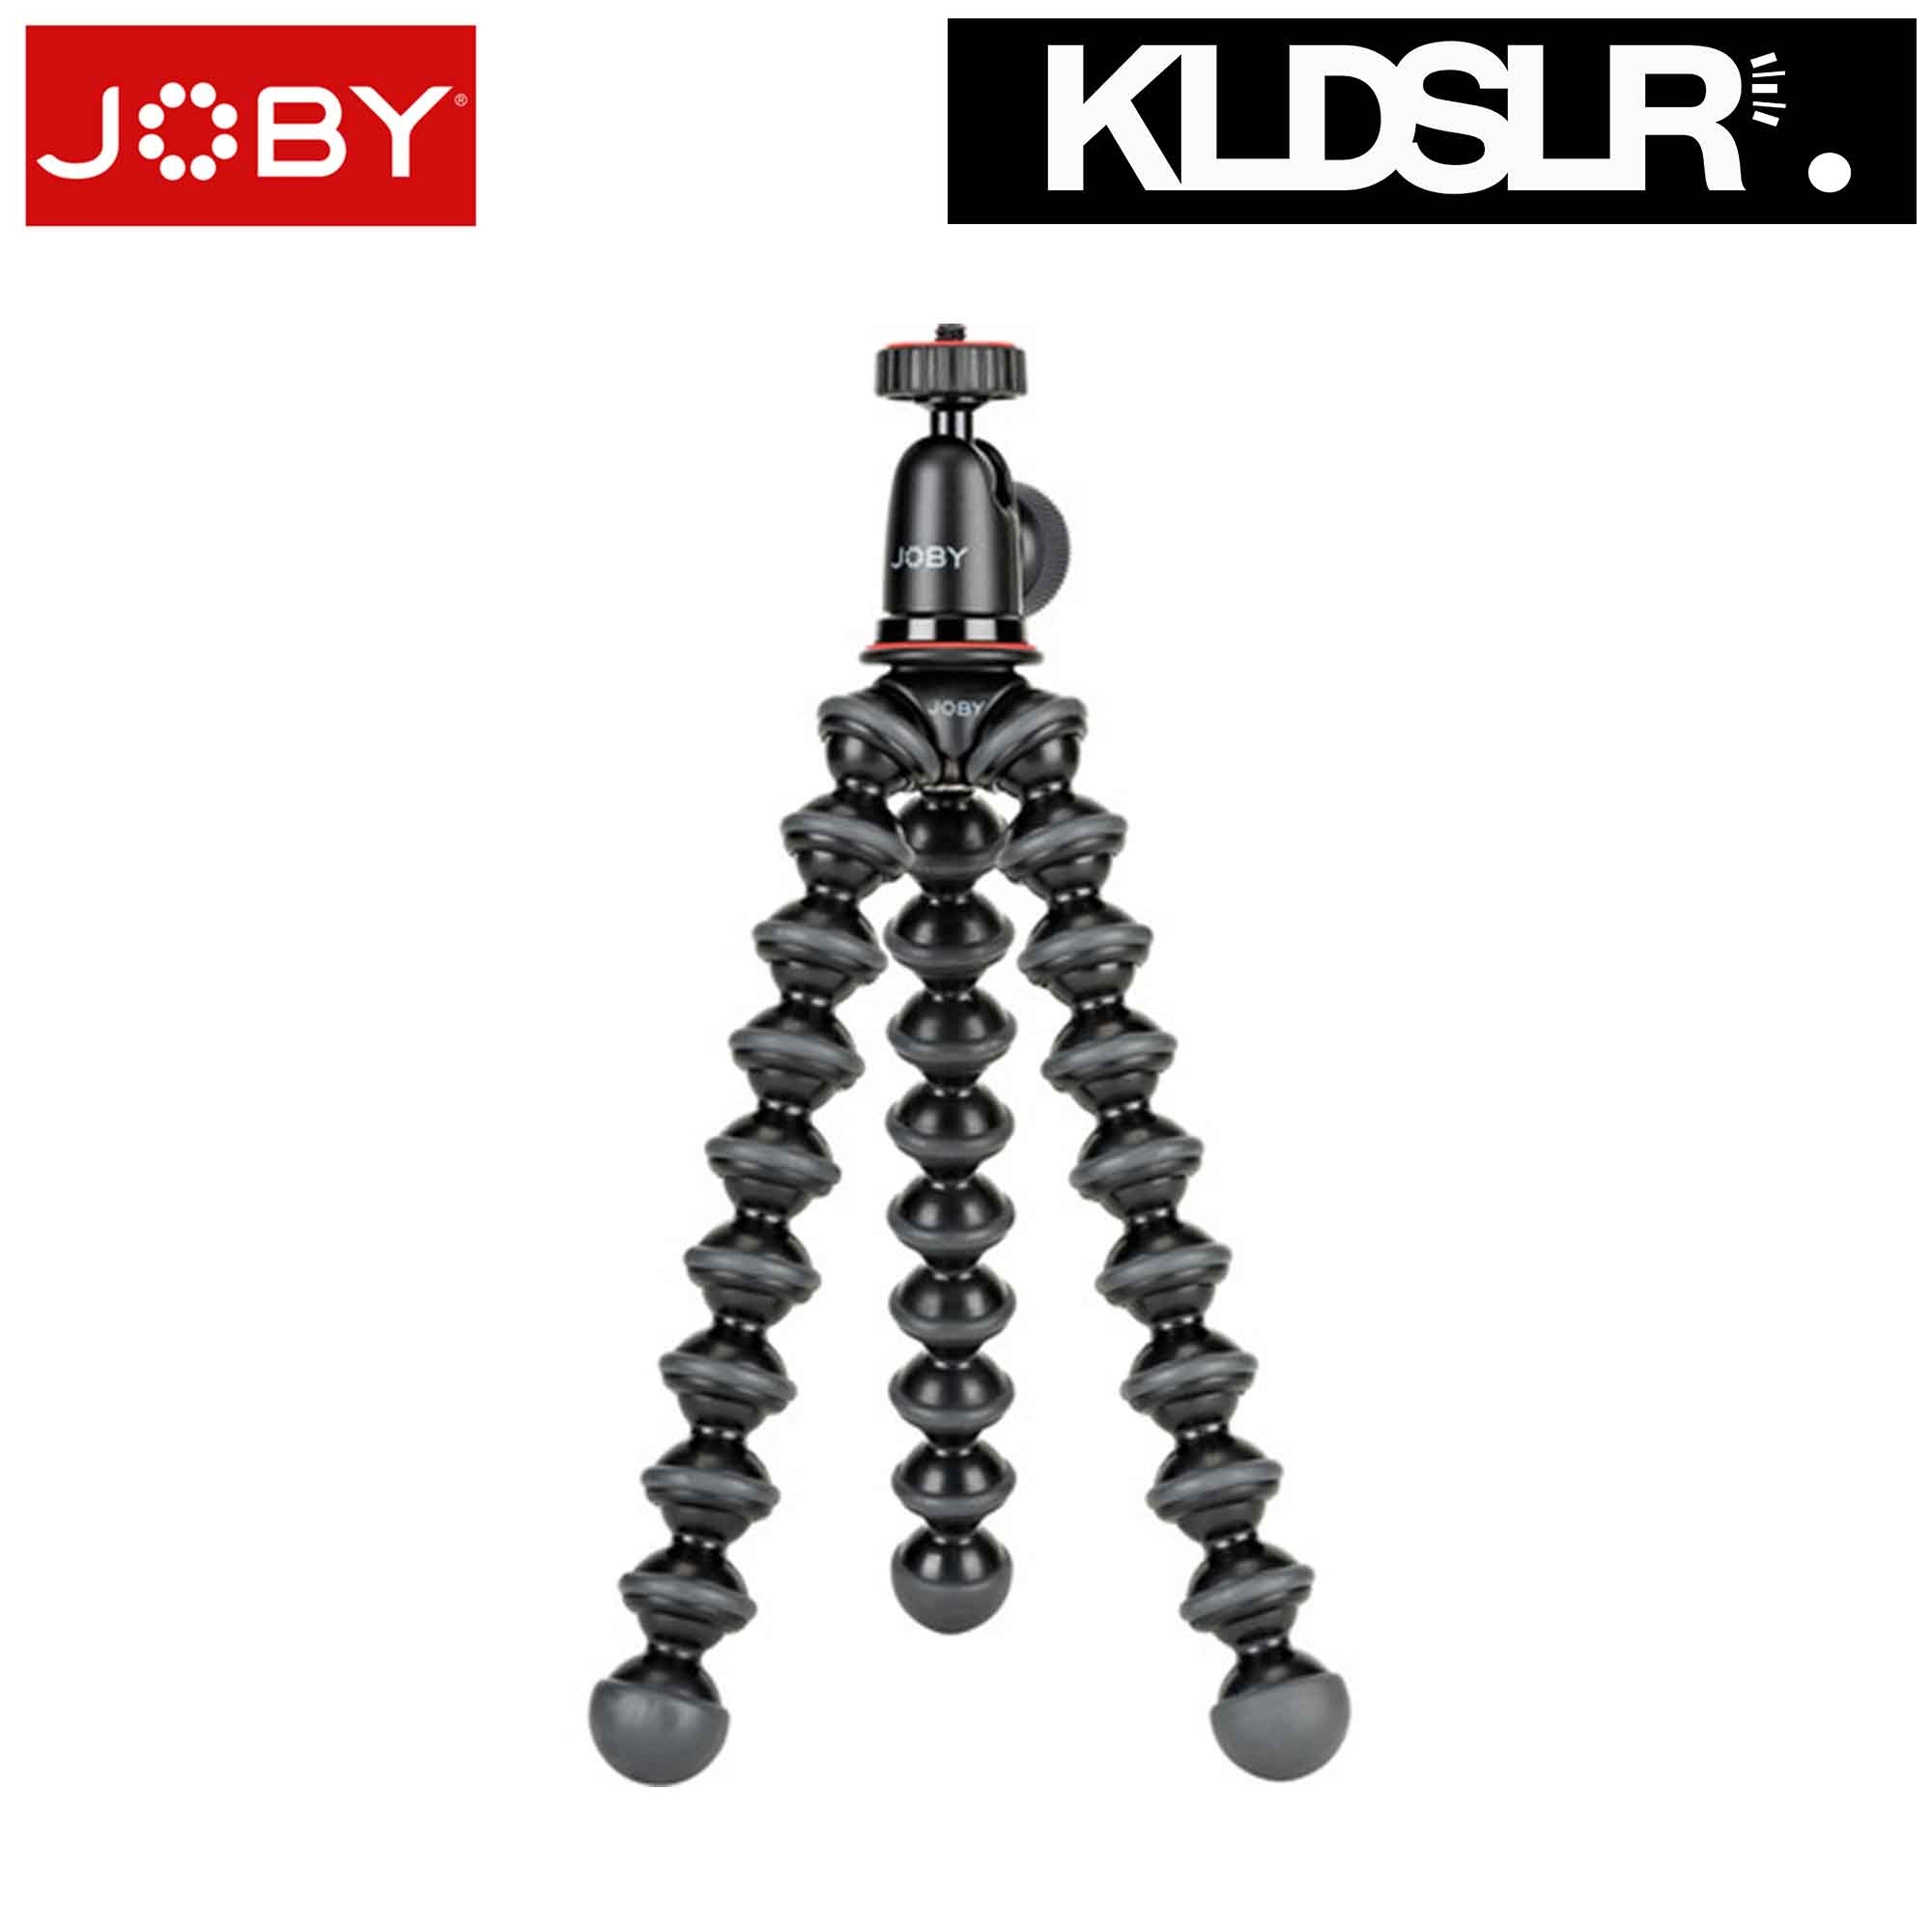 (MERDEKA)  Joby GorillaPod 1K Flexible Mini-Tripod with Ball Head